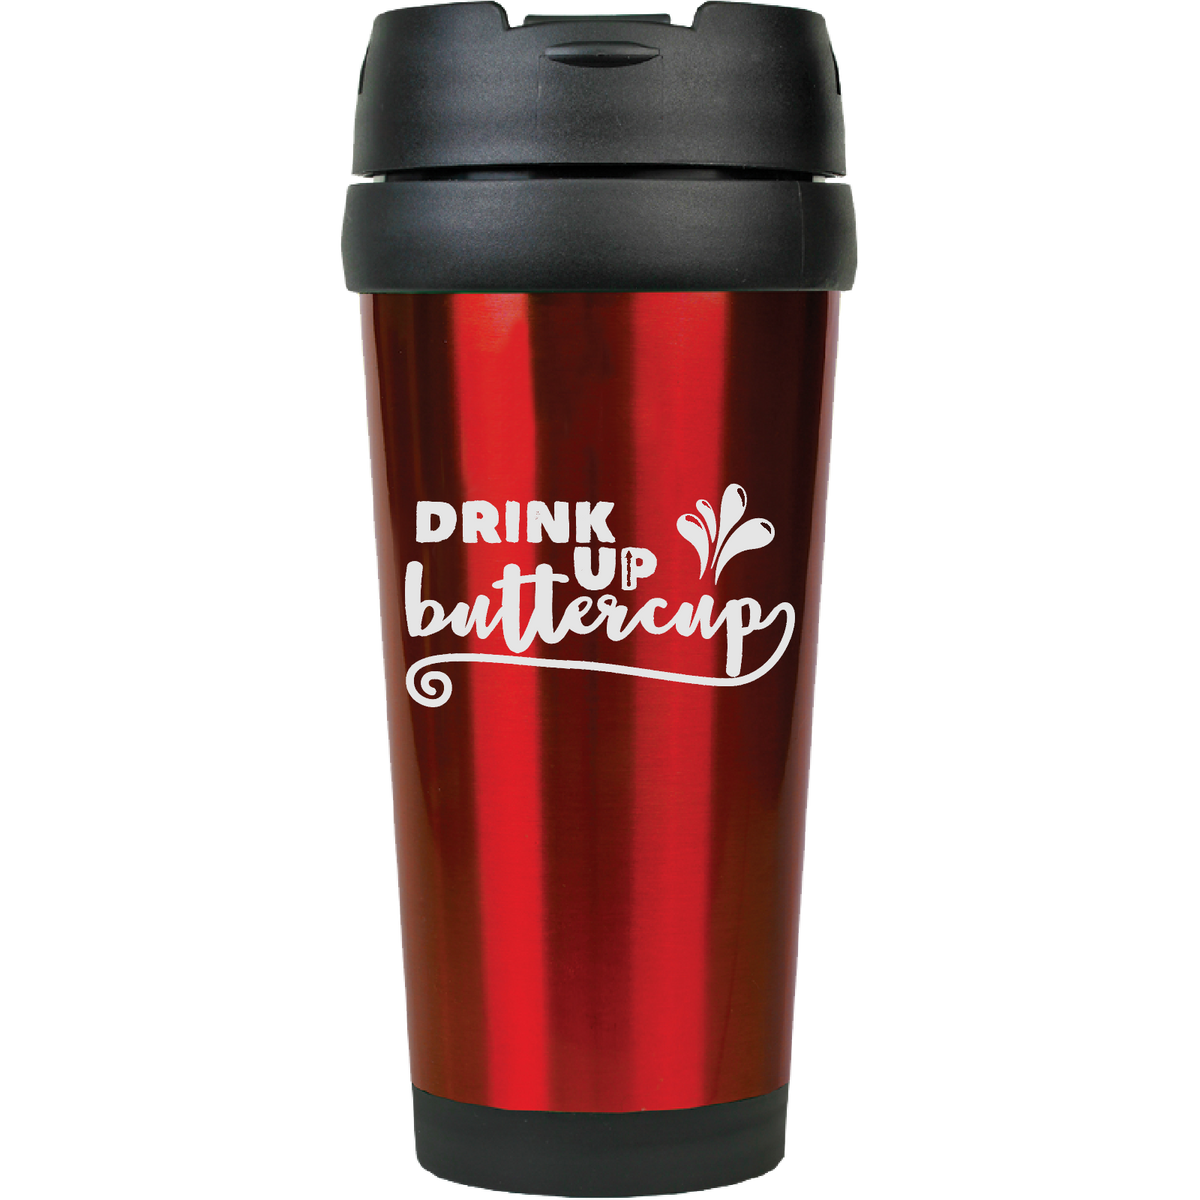 Drink up buttercup - 16oz. Engraved Travel Mug with Flip Lid